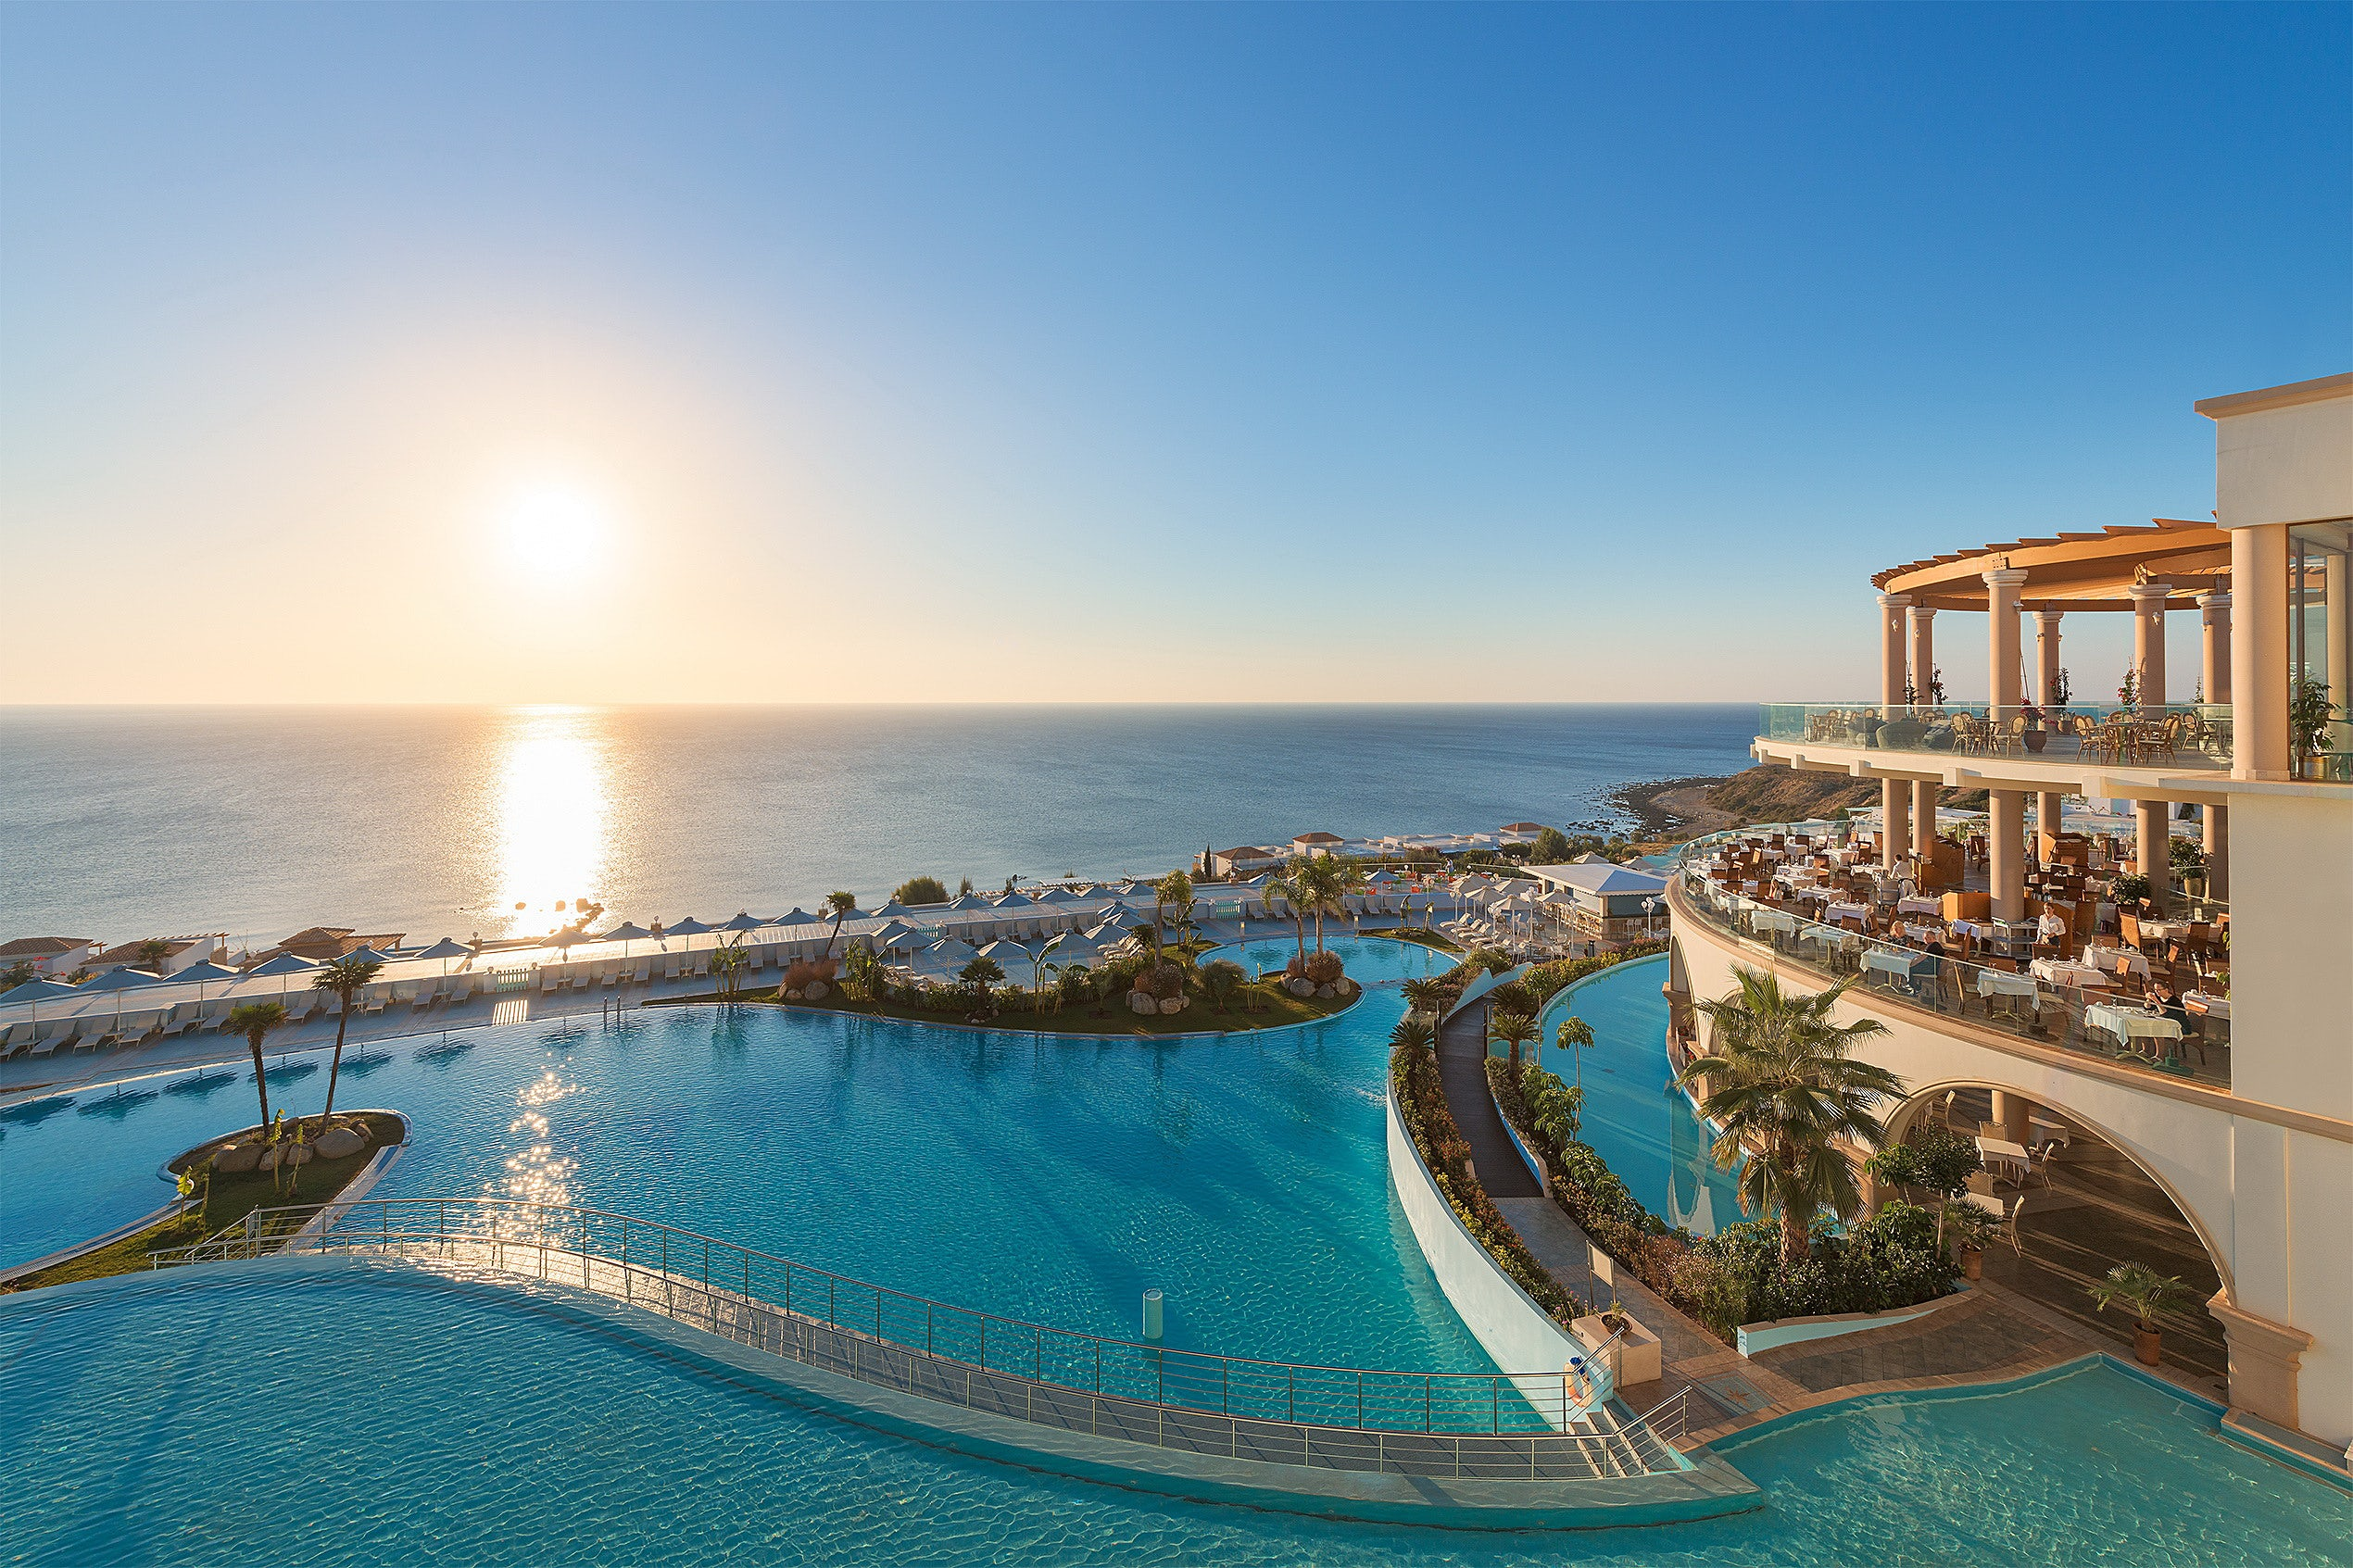 Atrium Prestige Thalasso Spa Resort